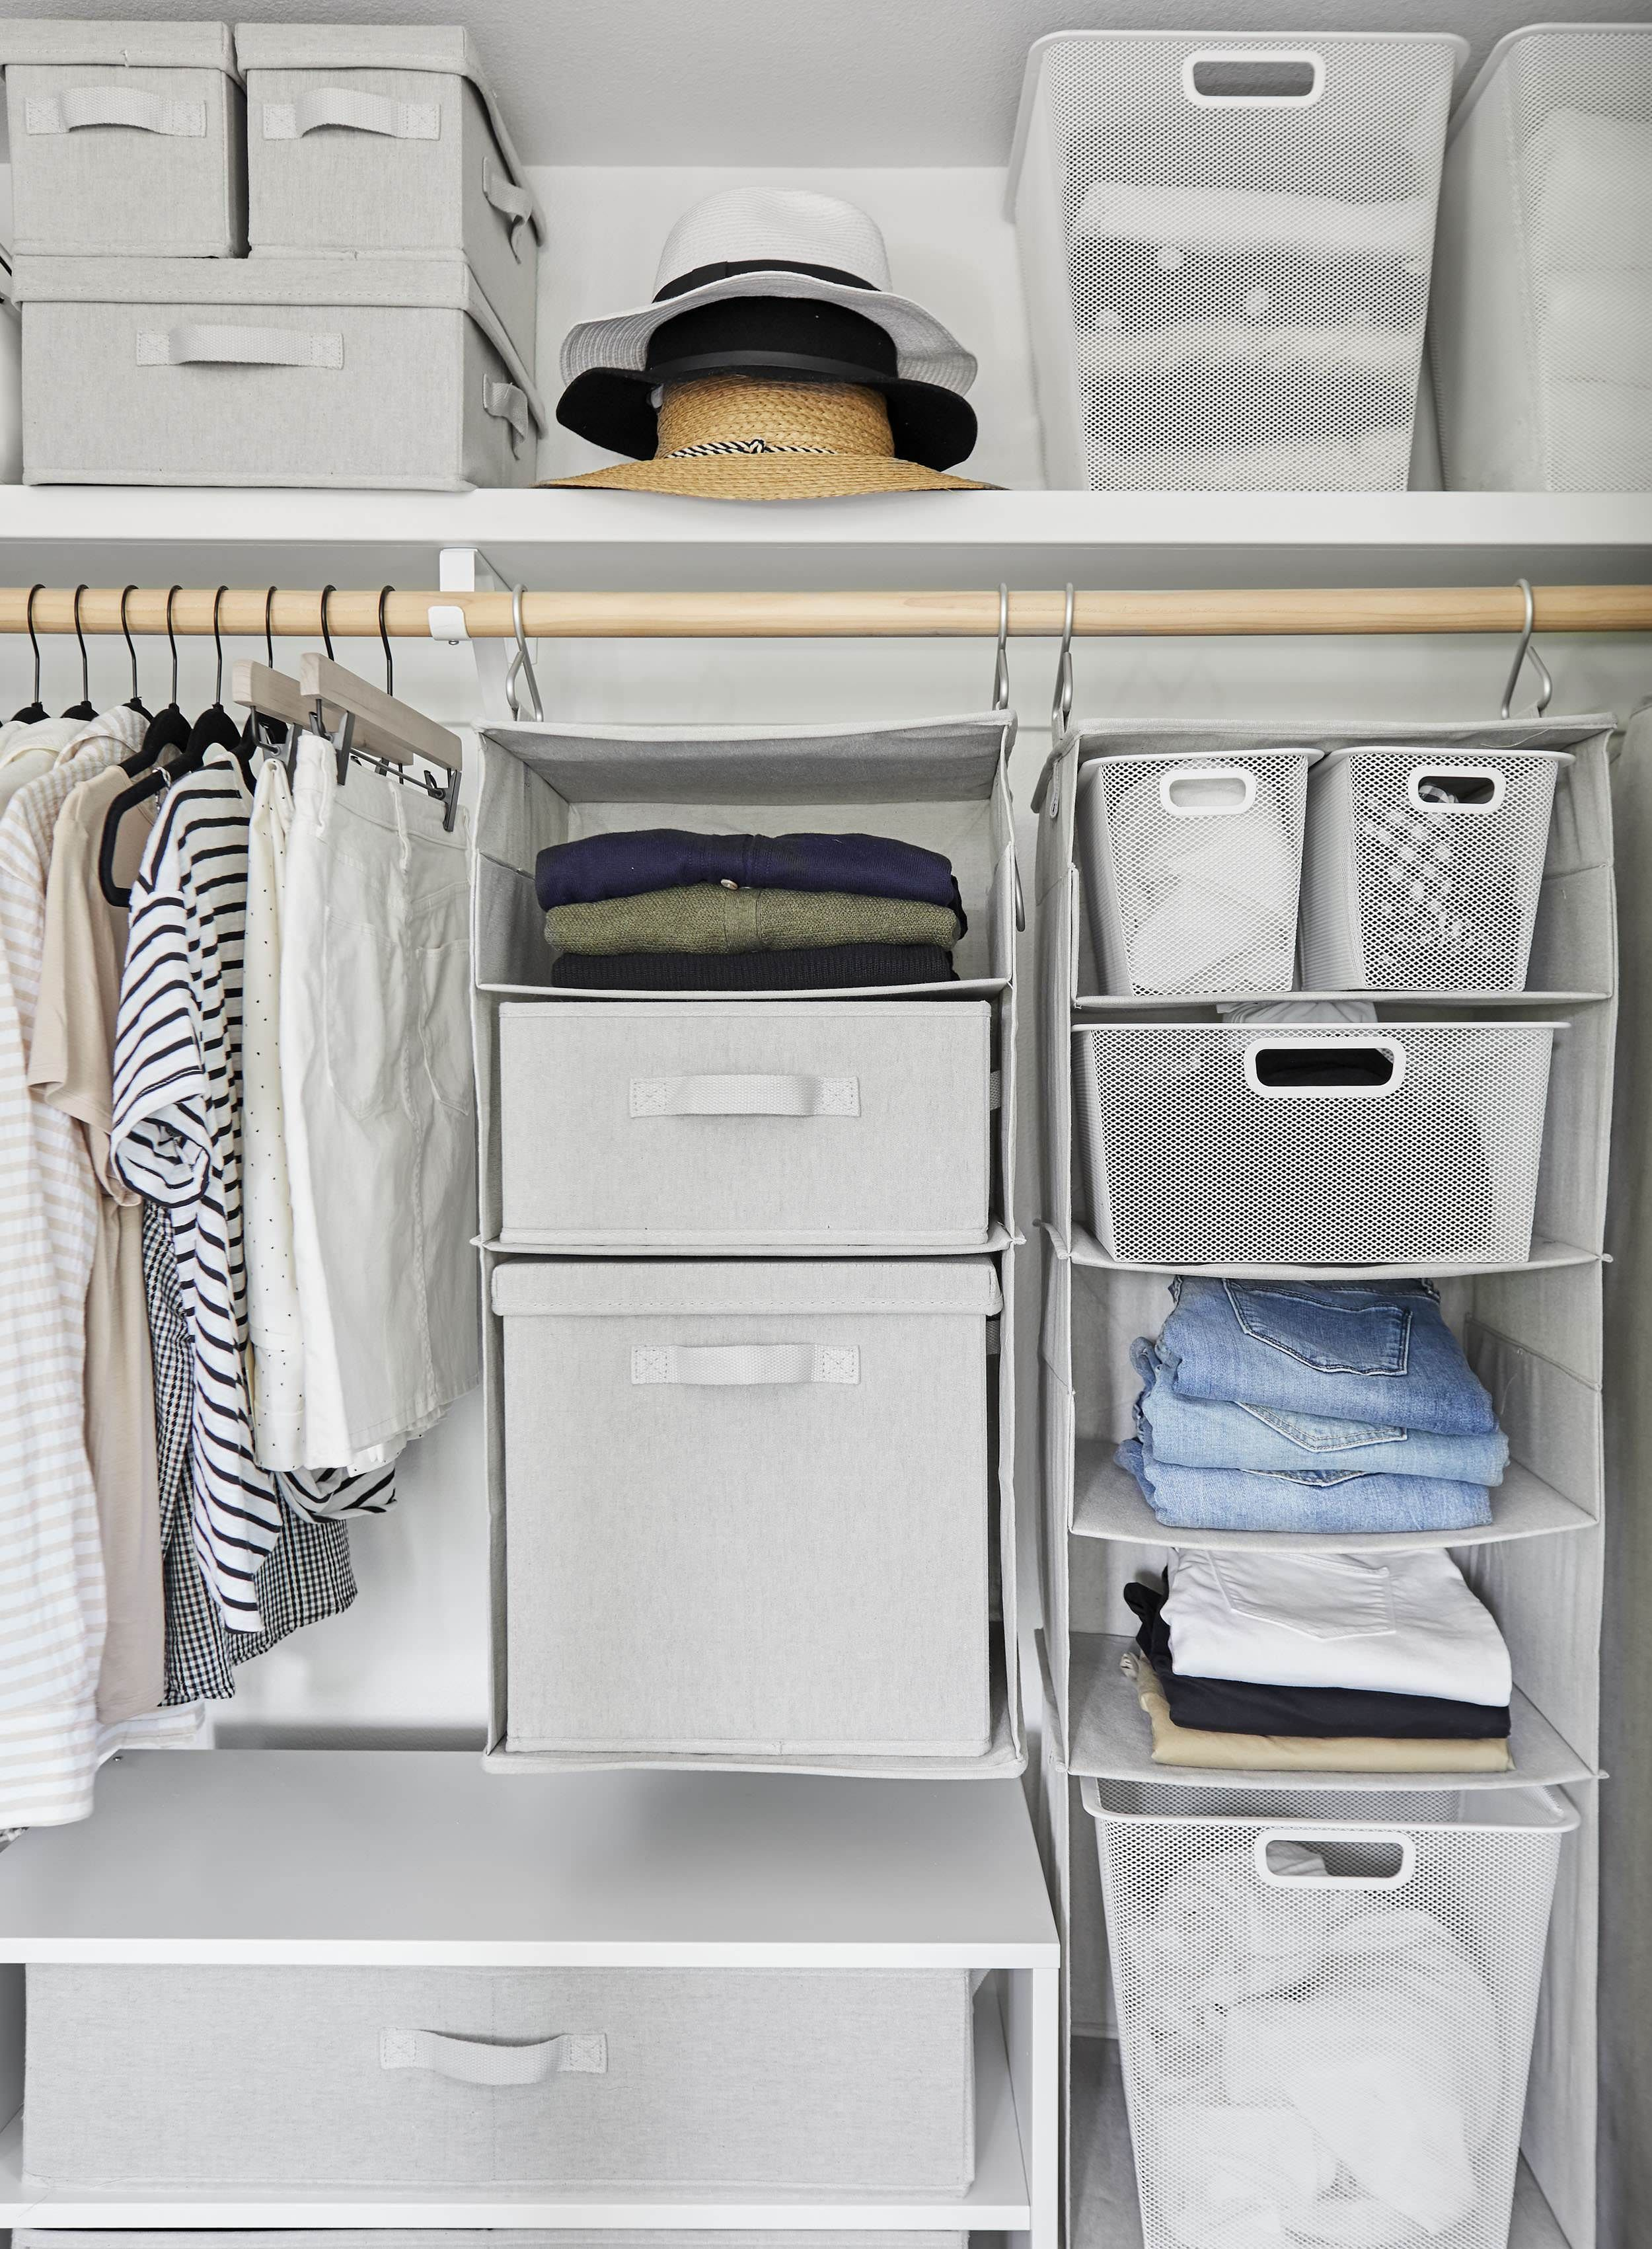 Genius Closet Organizing Ideas From Target S New Made By Design Line Bedroom Organization Closet Closet Hacks Organizing Clothes Closet Organization